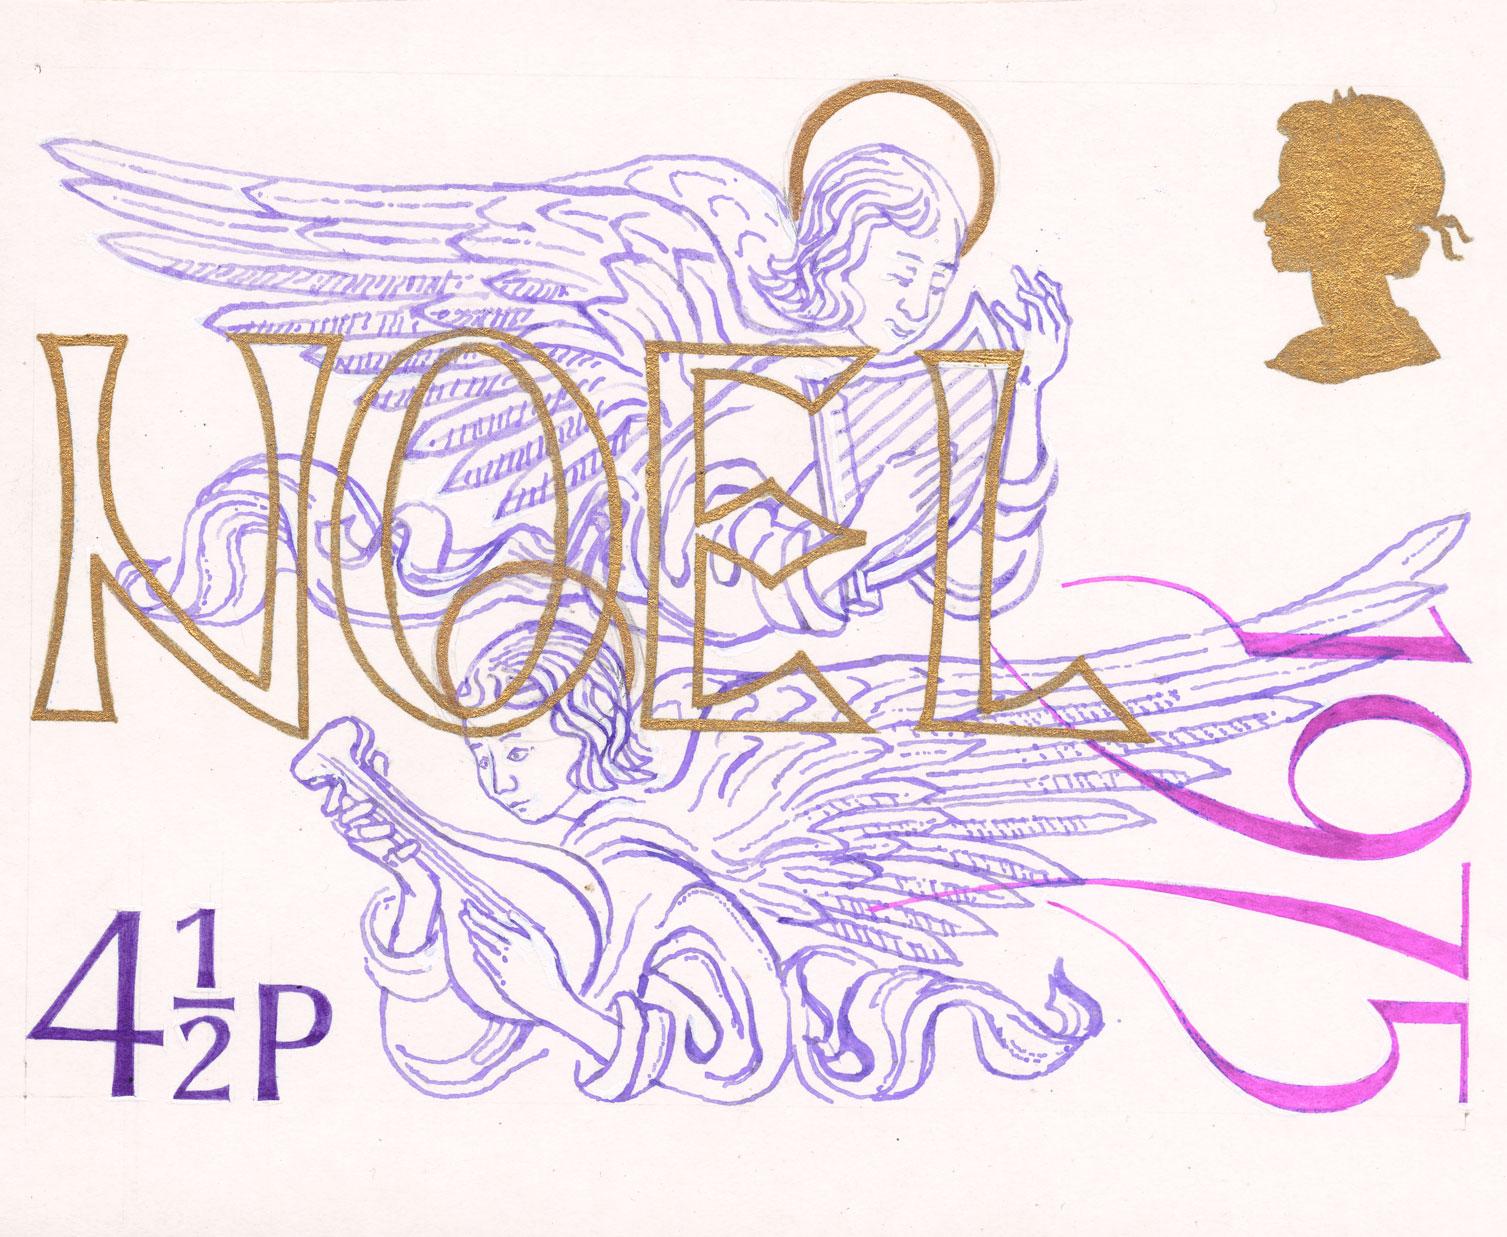 Image of two flying angels and the word 'Noel' in gold and purple.